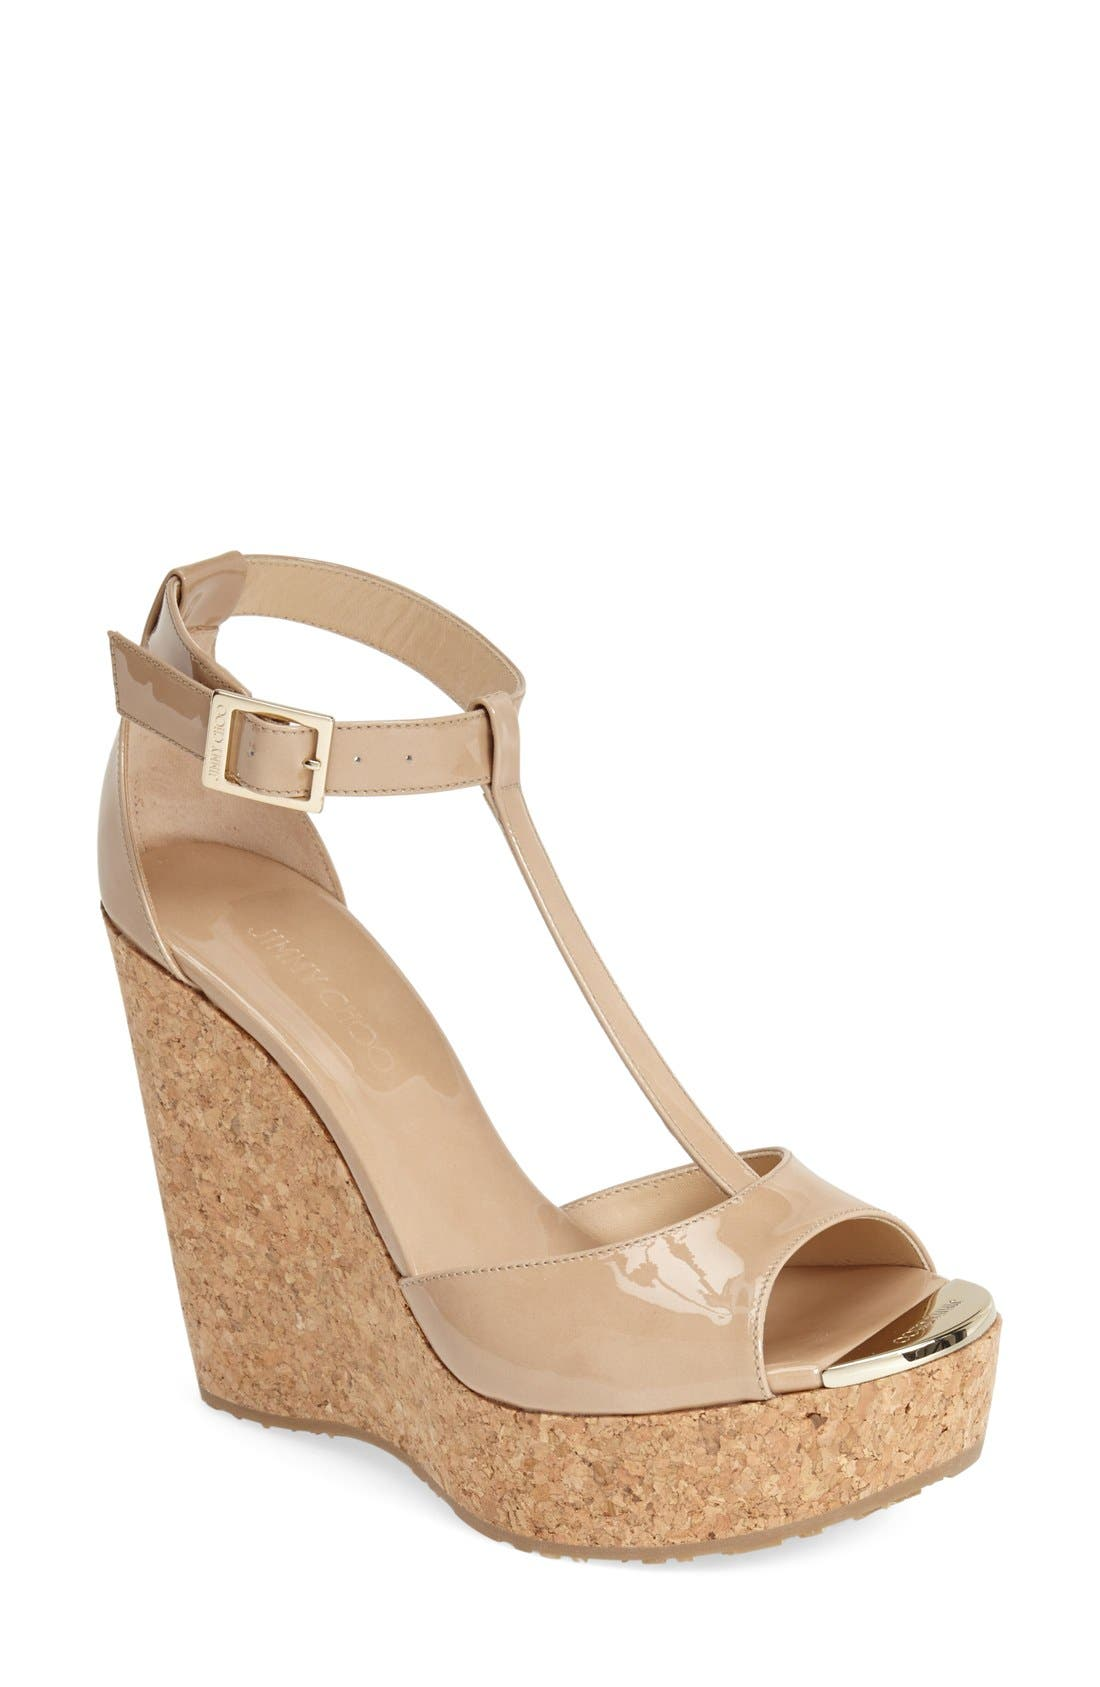 Alternate Image 1 Selected - Jimmy Choo 'Pela' Cork Wedge Sandal (Women)